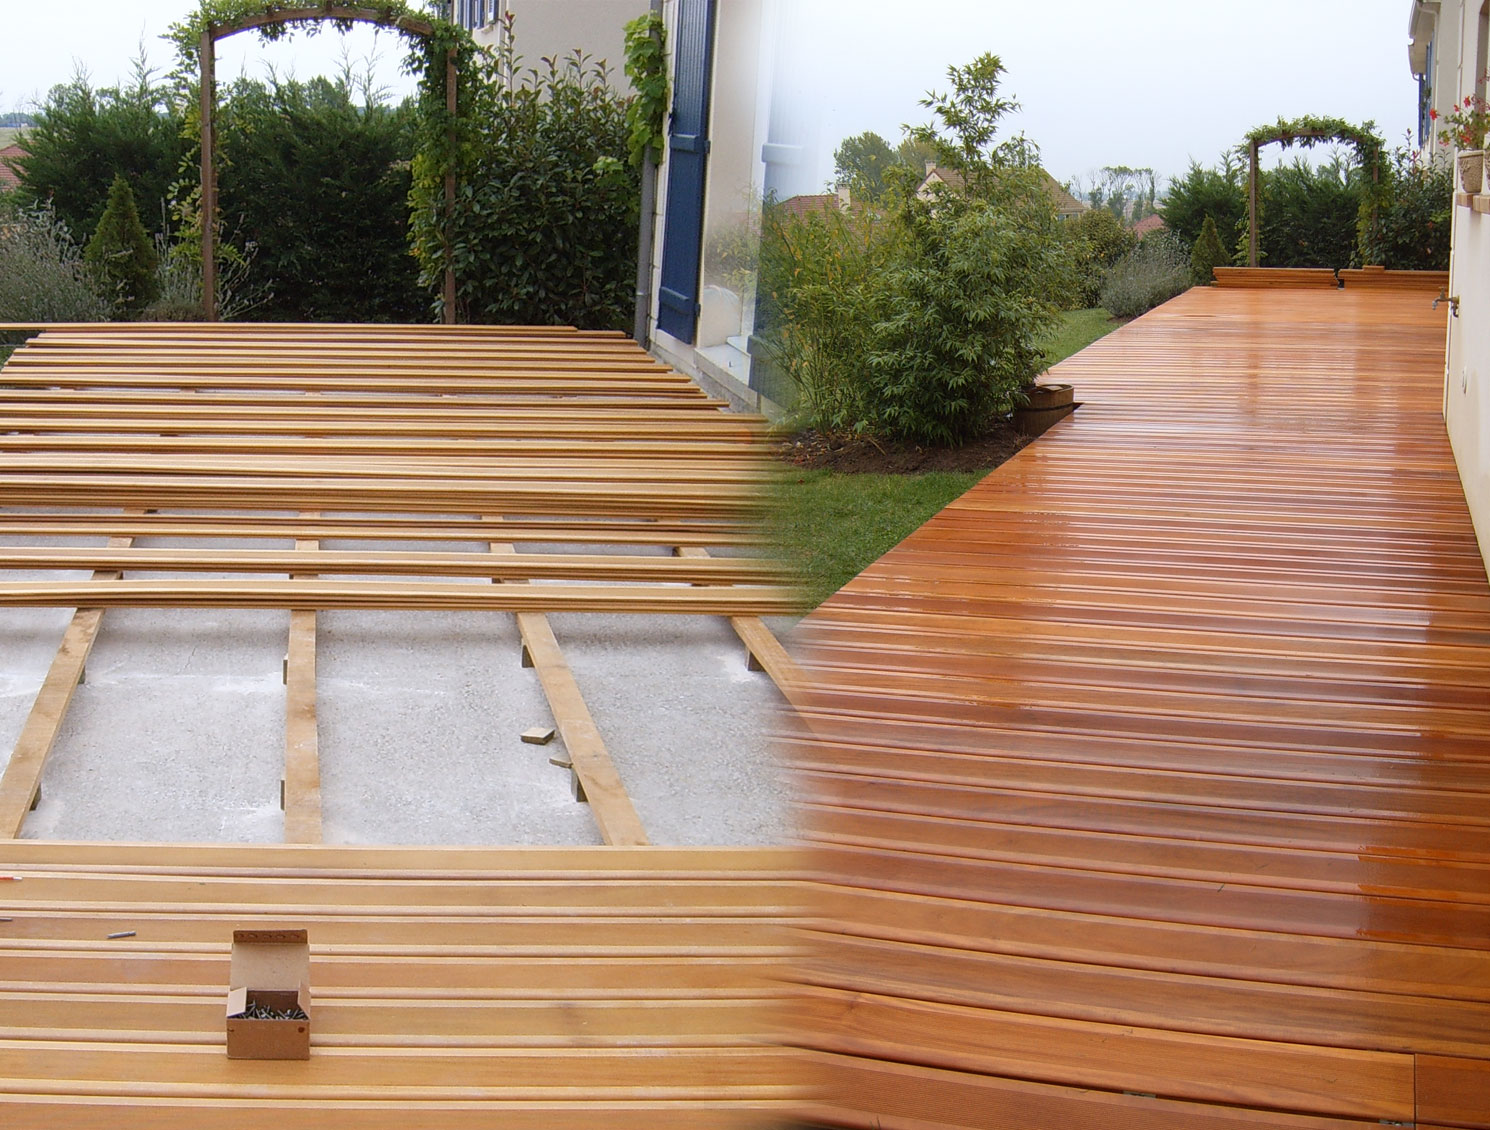 Cheminements et terrasses brin de nature for Pose de terrasse en bois